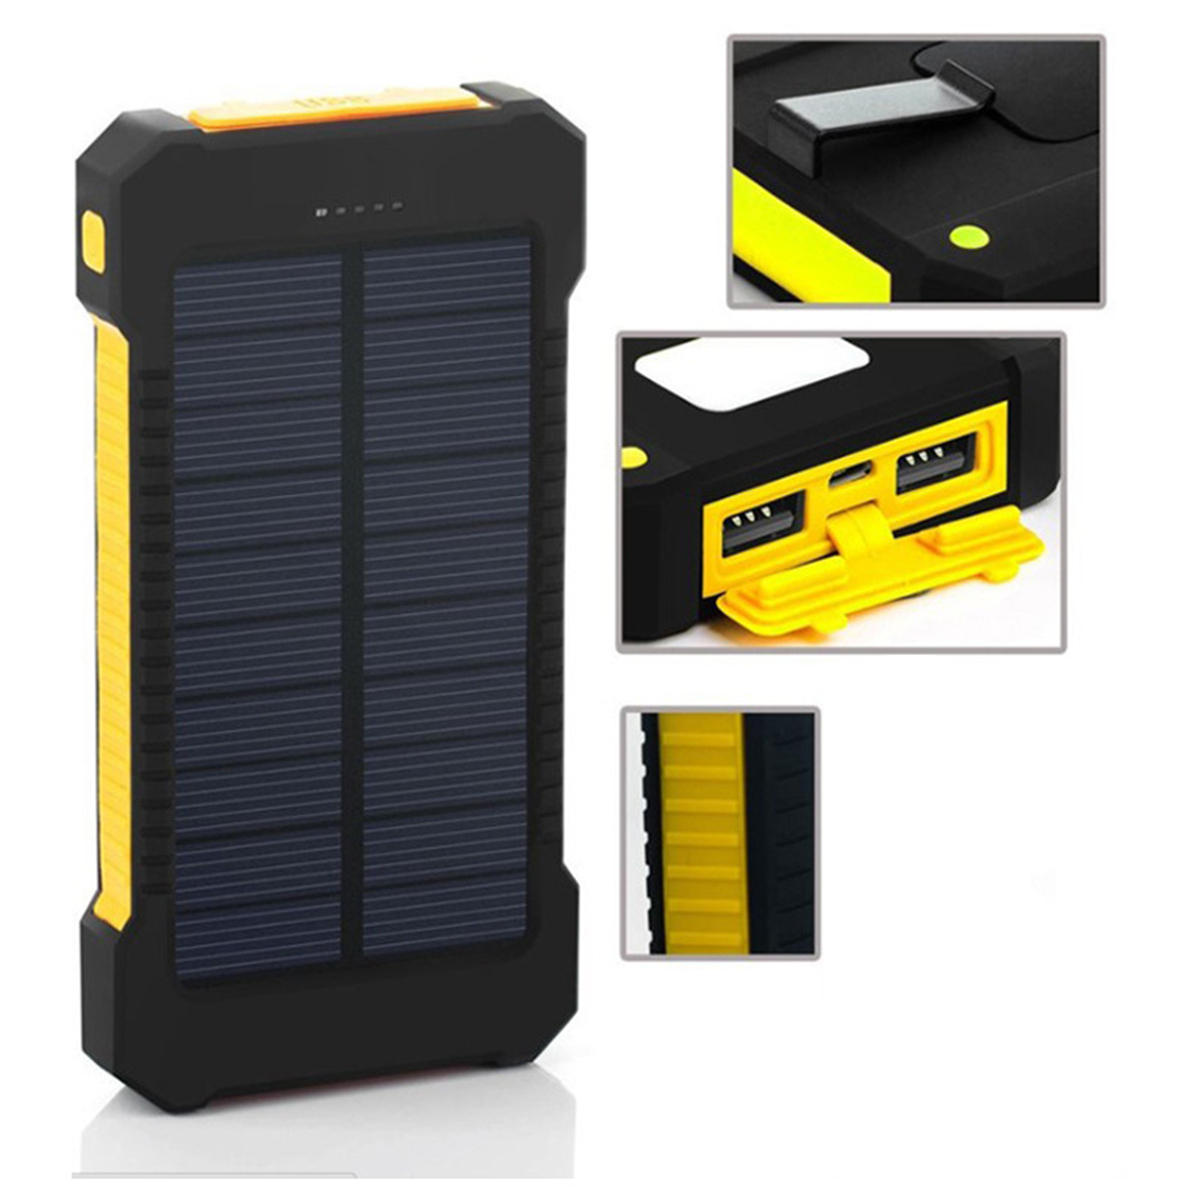 Solar Panel Led Dual Usb Ports Diy Power Bank Case Battery Charger How To Build Powered Mobile Phone